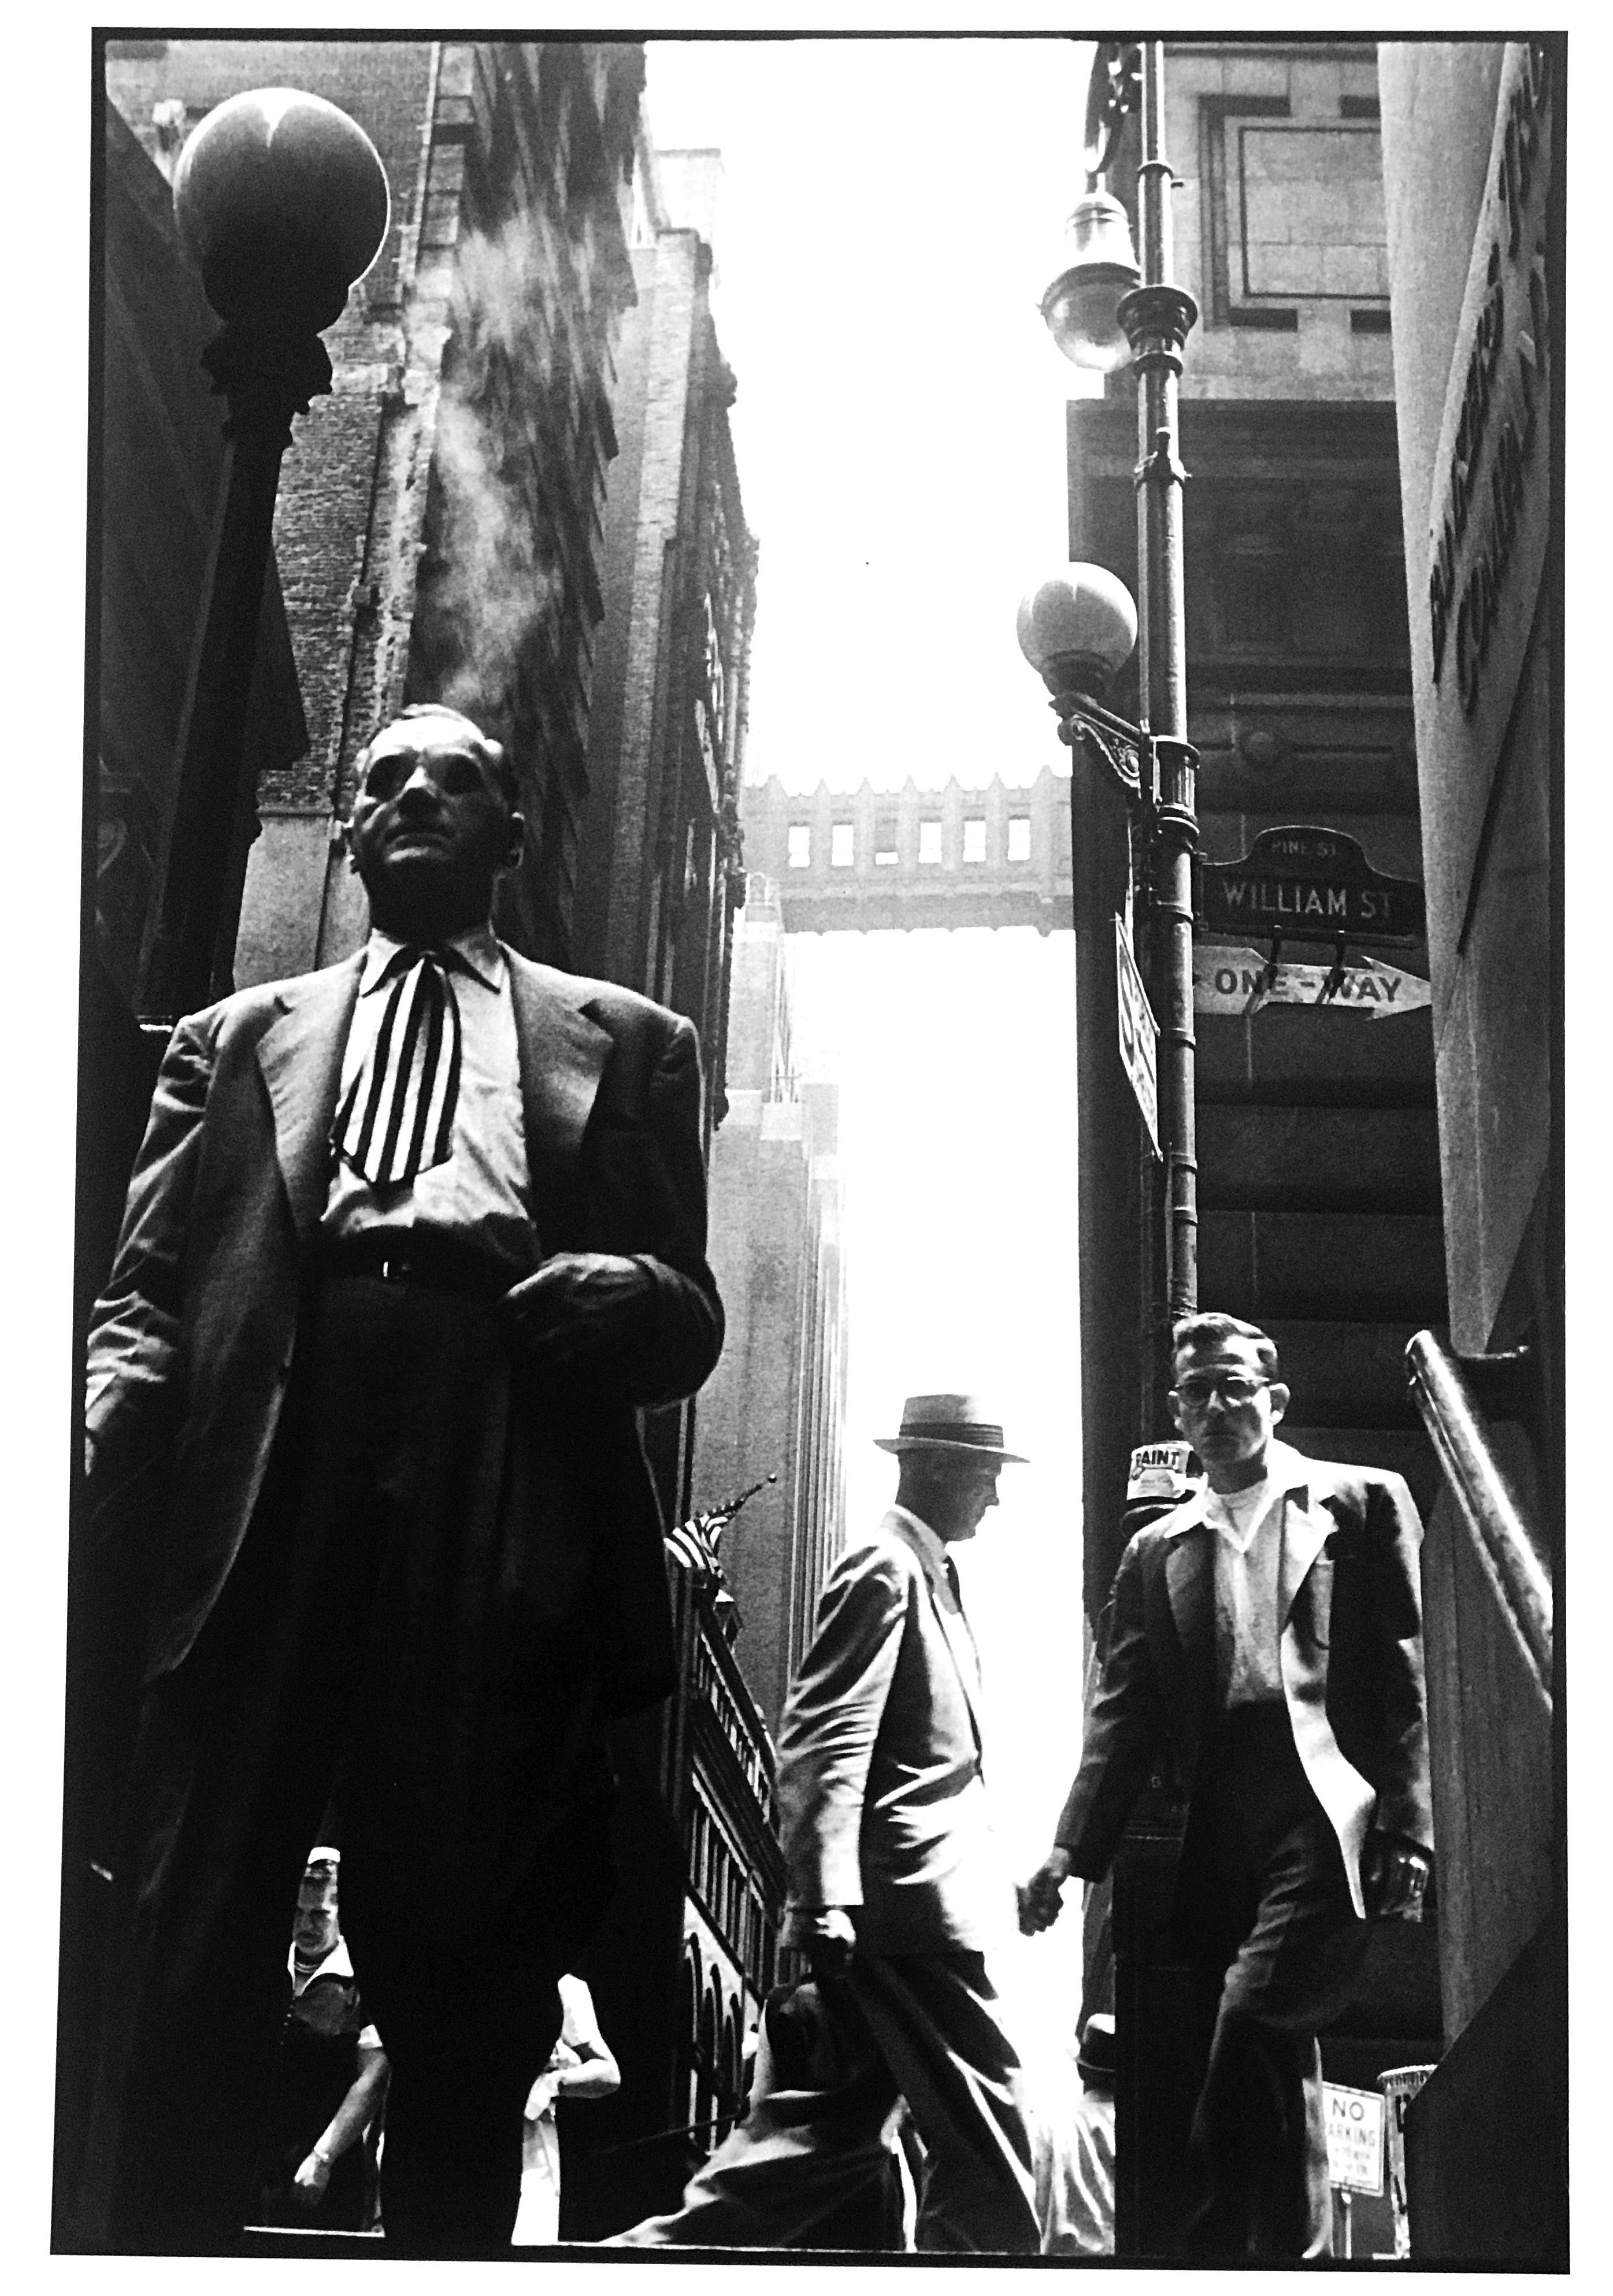 Wall Street, New York City, Black and White Documentary Photography 1950s